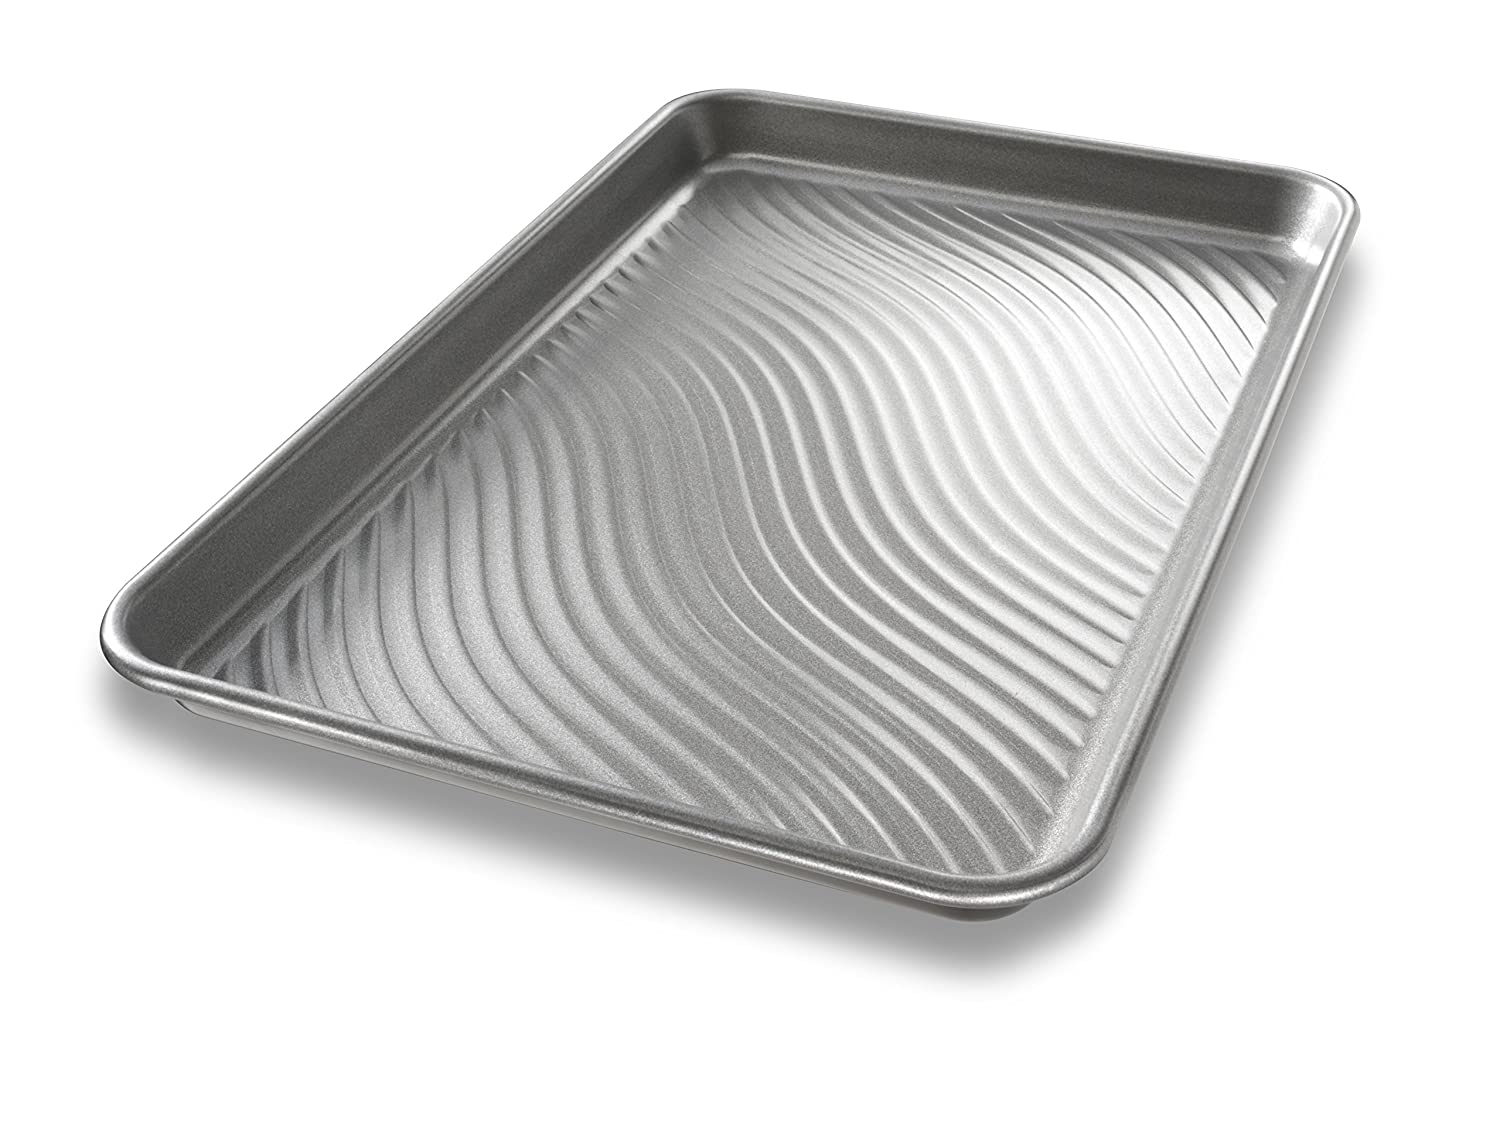 USA Pan Patriot Pan Bakeware Aluminized Steel Half Sheet Pan 1050HS-TAR